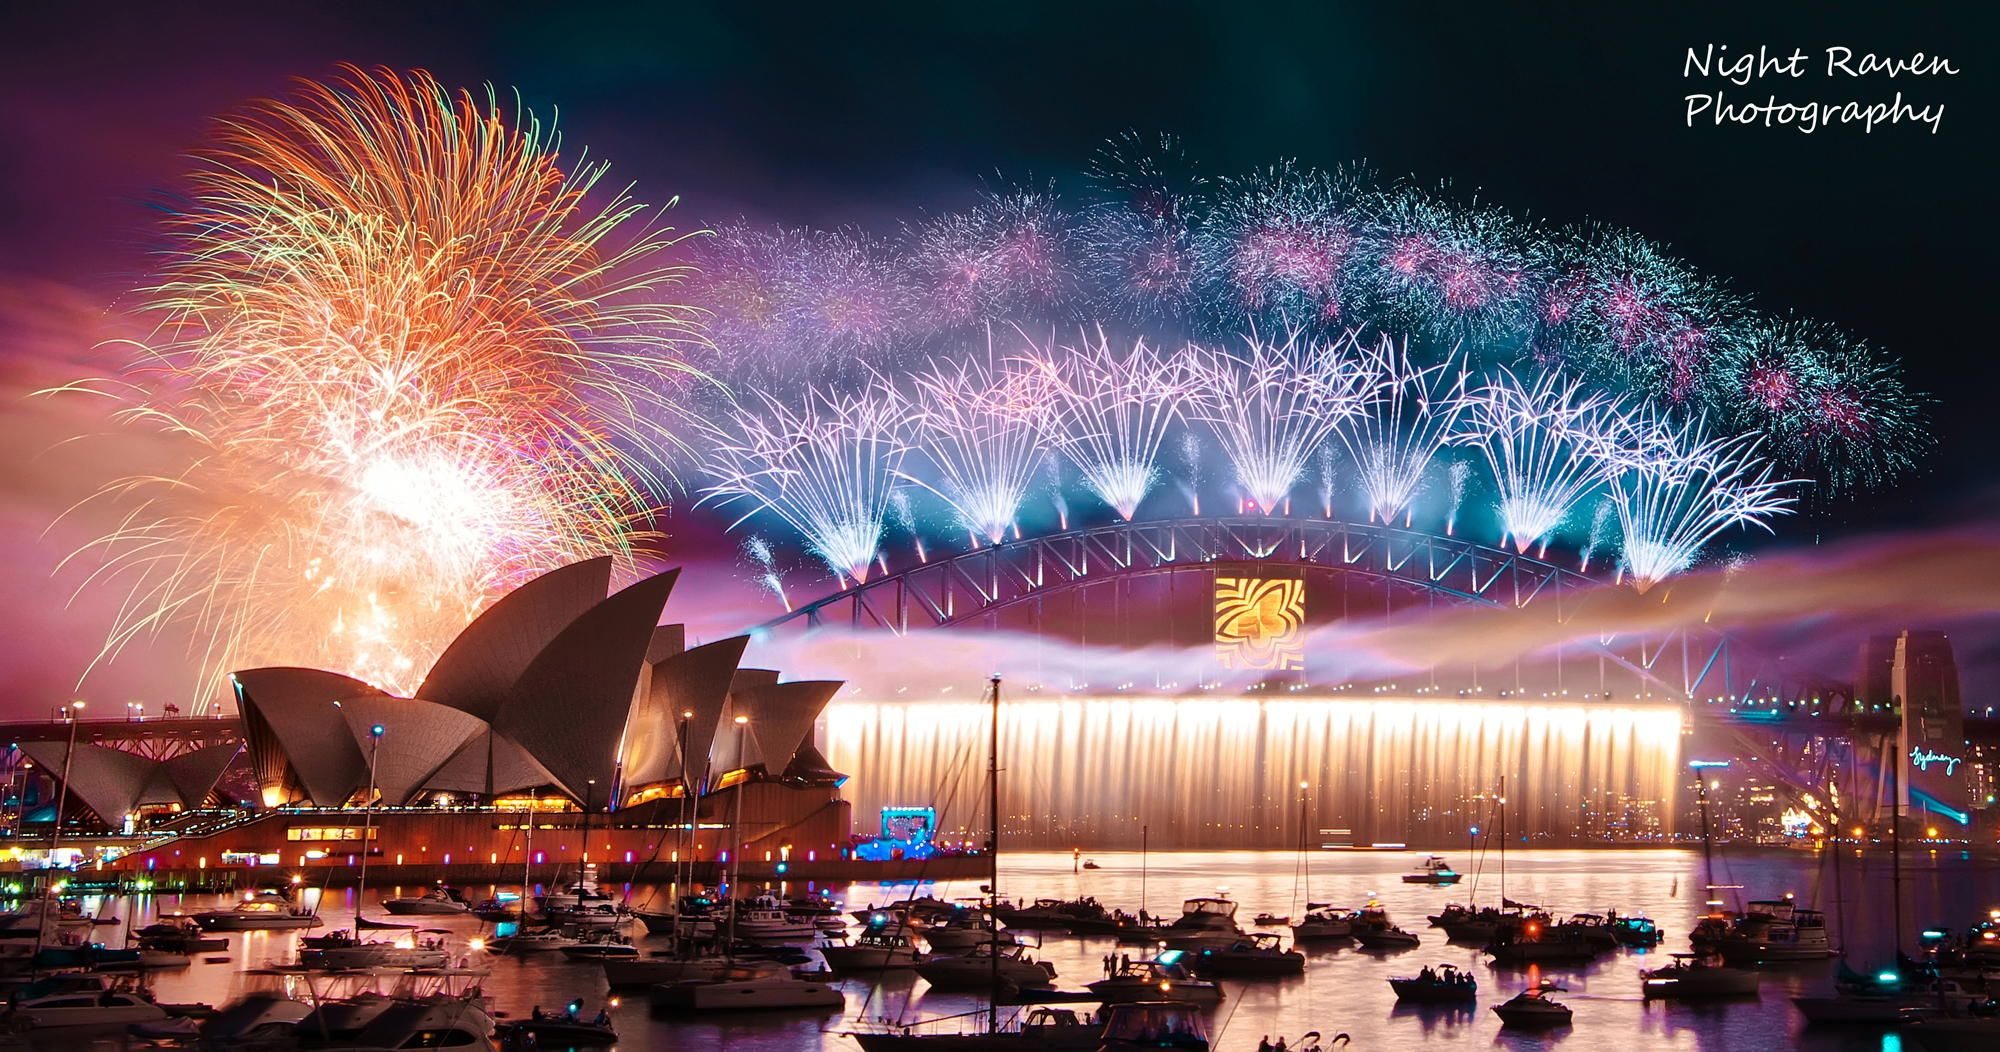 Sydney Nye Fireworks By Night Raven On 500px Sydney New Years